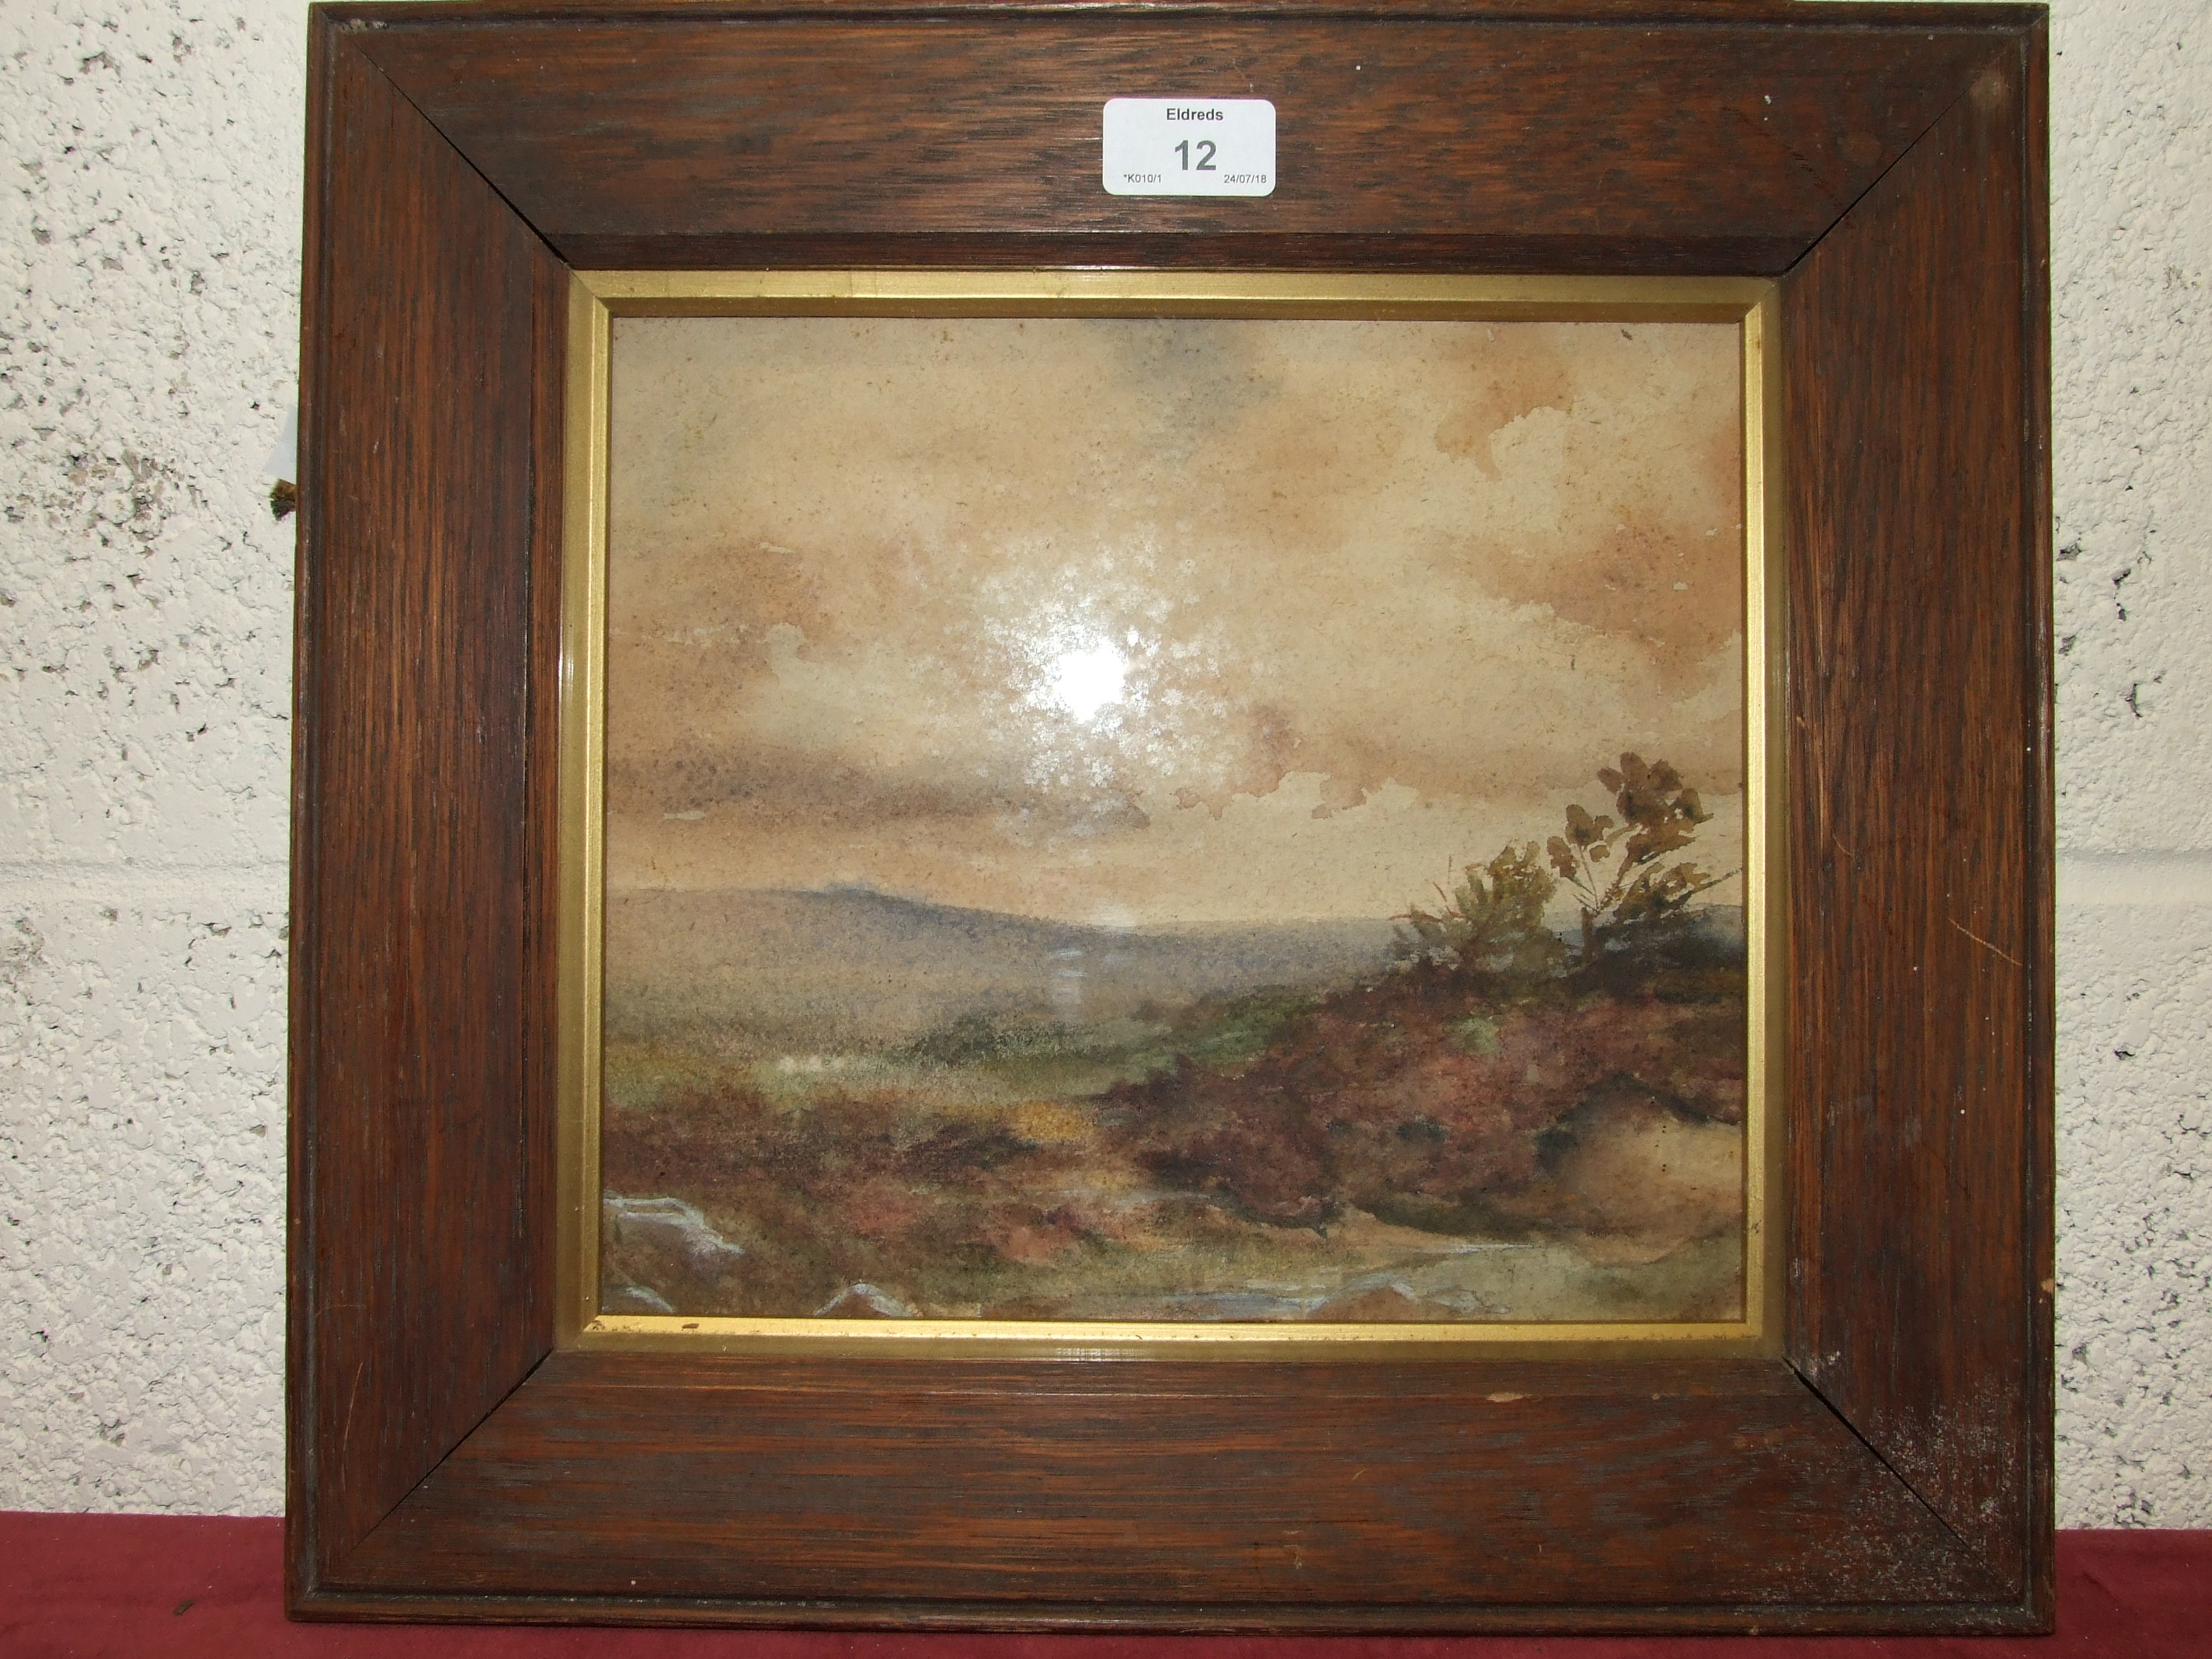 Lot 12 - W Payne FIGURES AND CATTLE IN A LANDSCAPE Signed watercolour, 18 x 26cm, faded, unframed, together